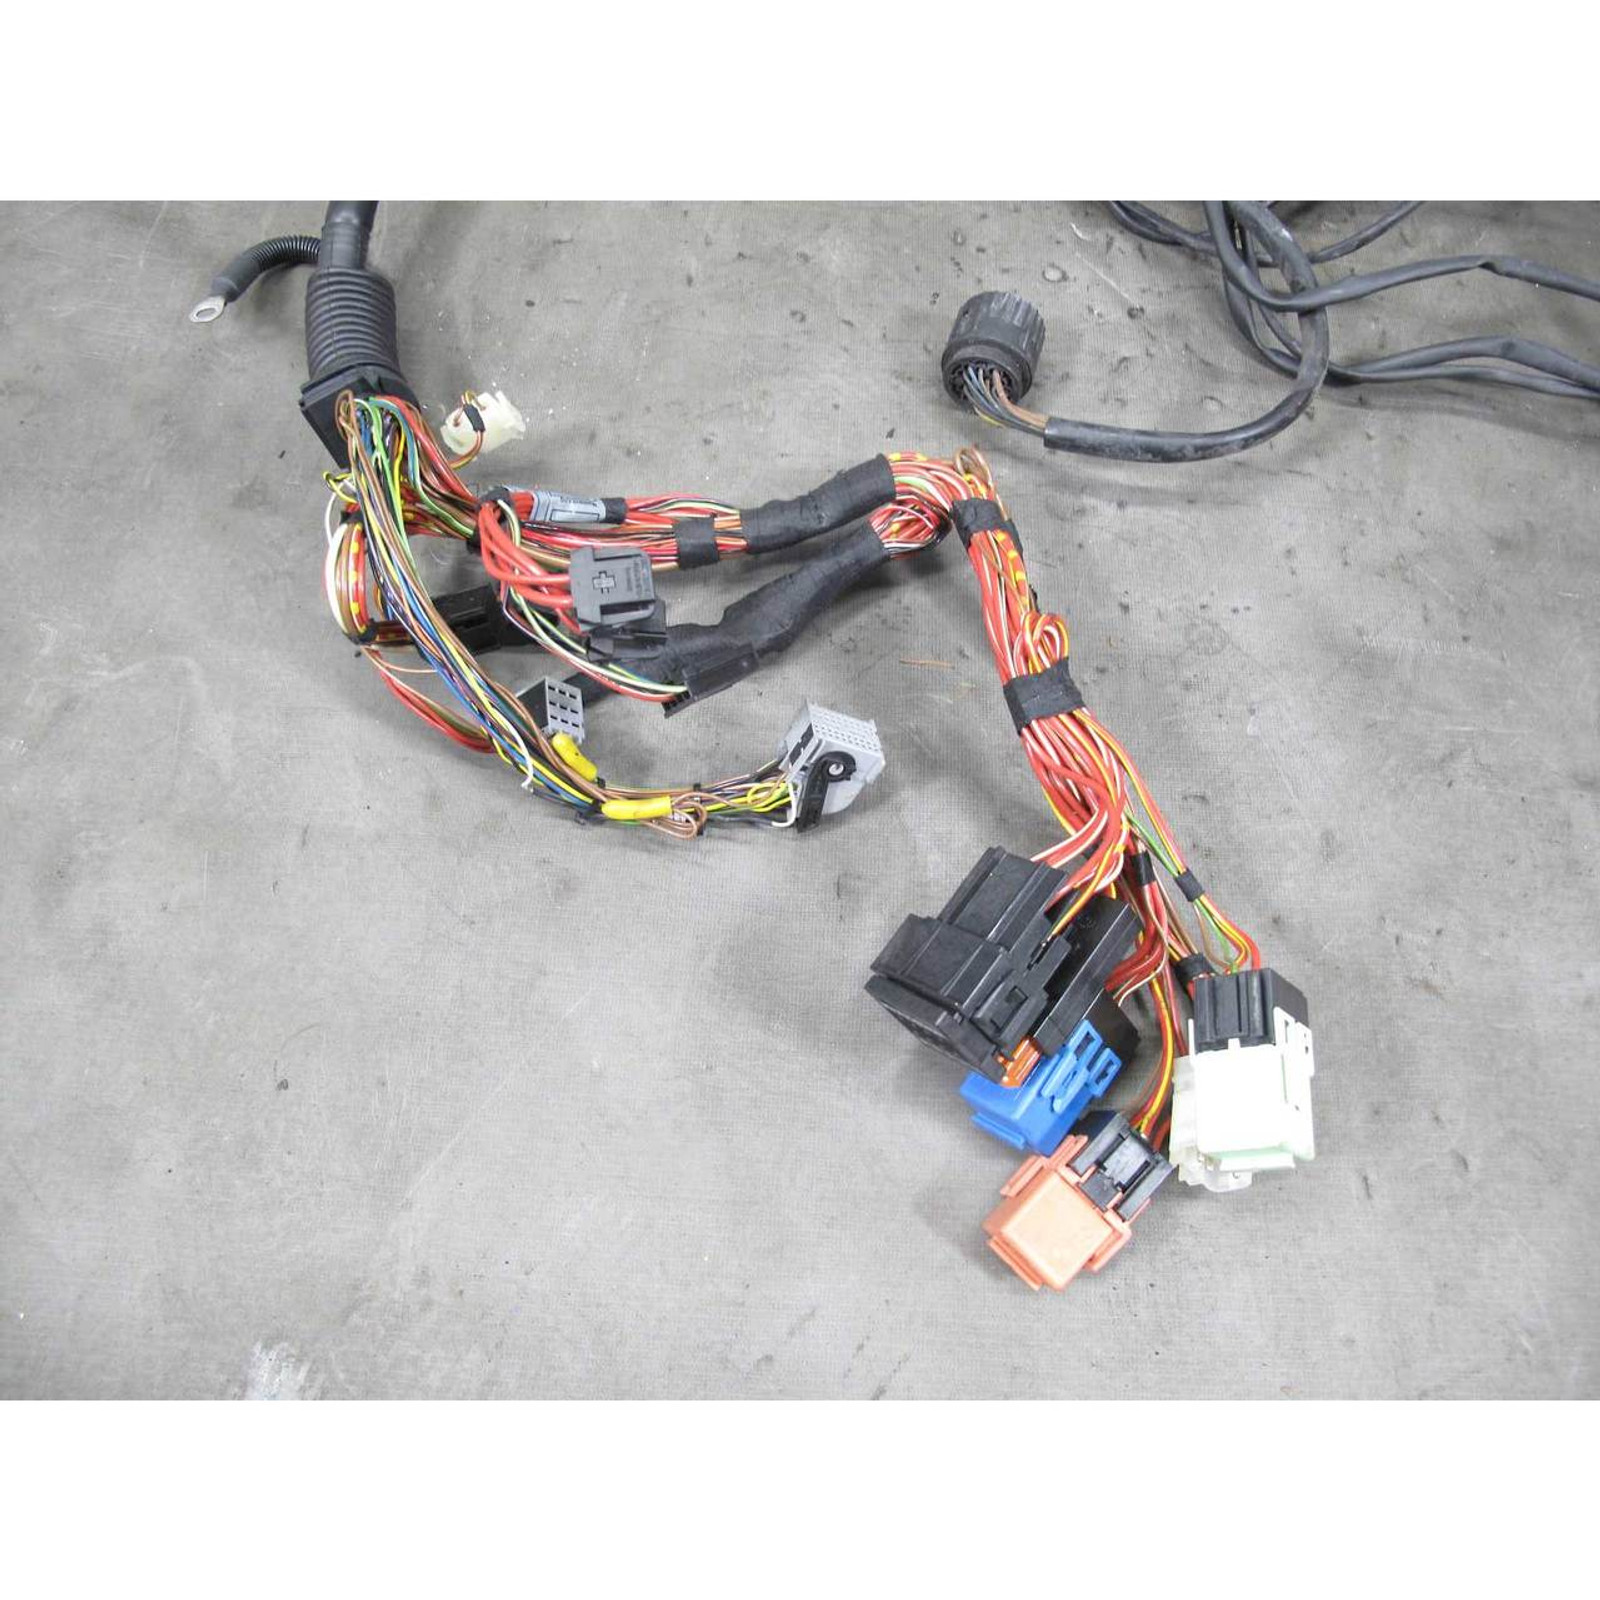 E46 Transmission Wiring Harness Electrical Diagrams 2001 2003 Bmw M3 Early Sequential Manual Smg S13 240sx Chassis Diagram